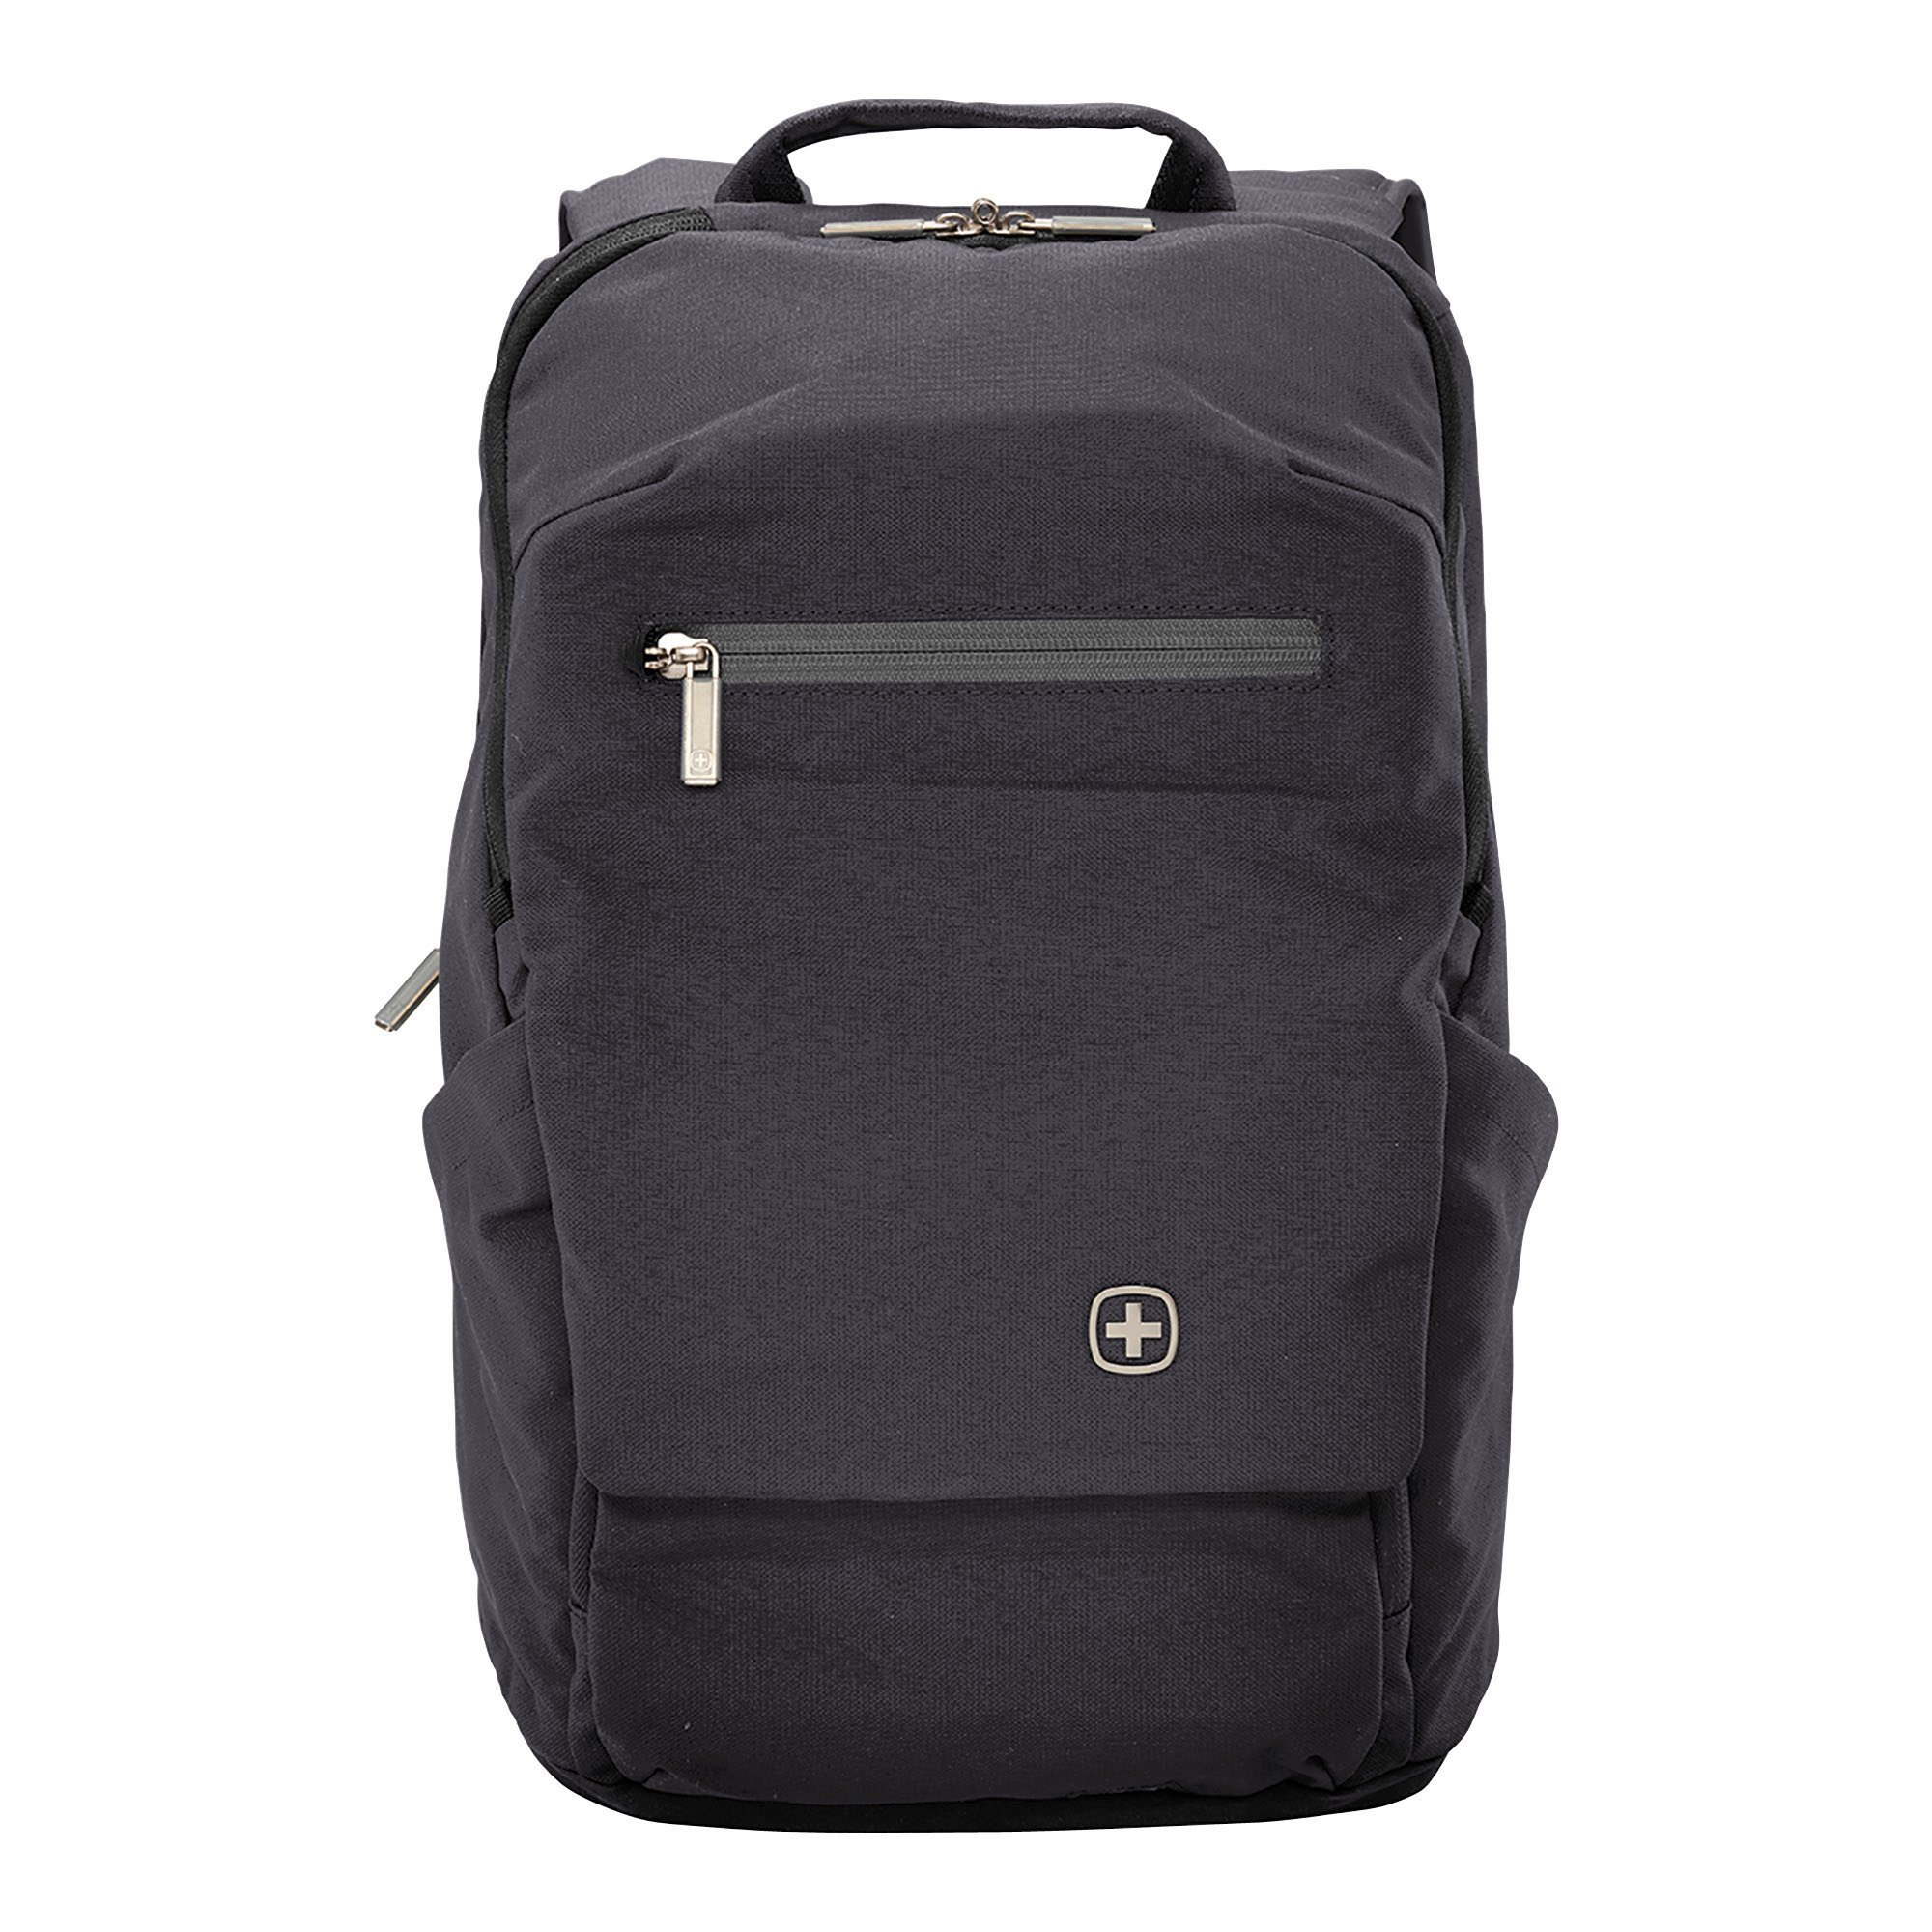 Image of Wenger Sky Port Laptop Backpack